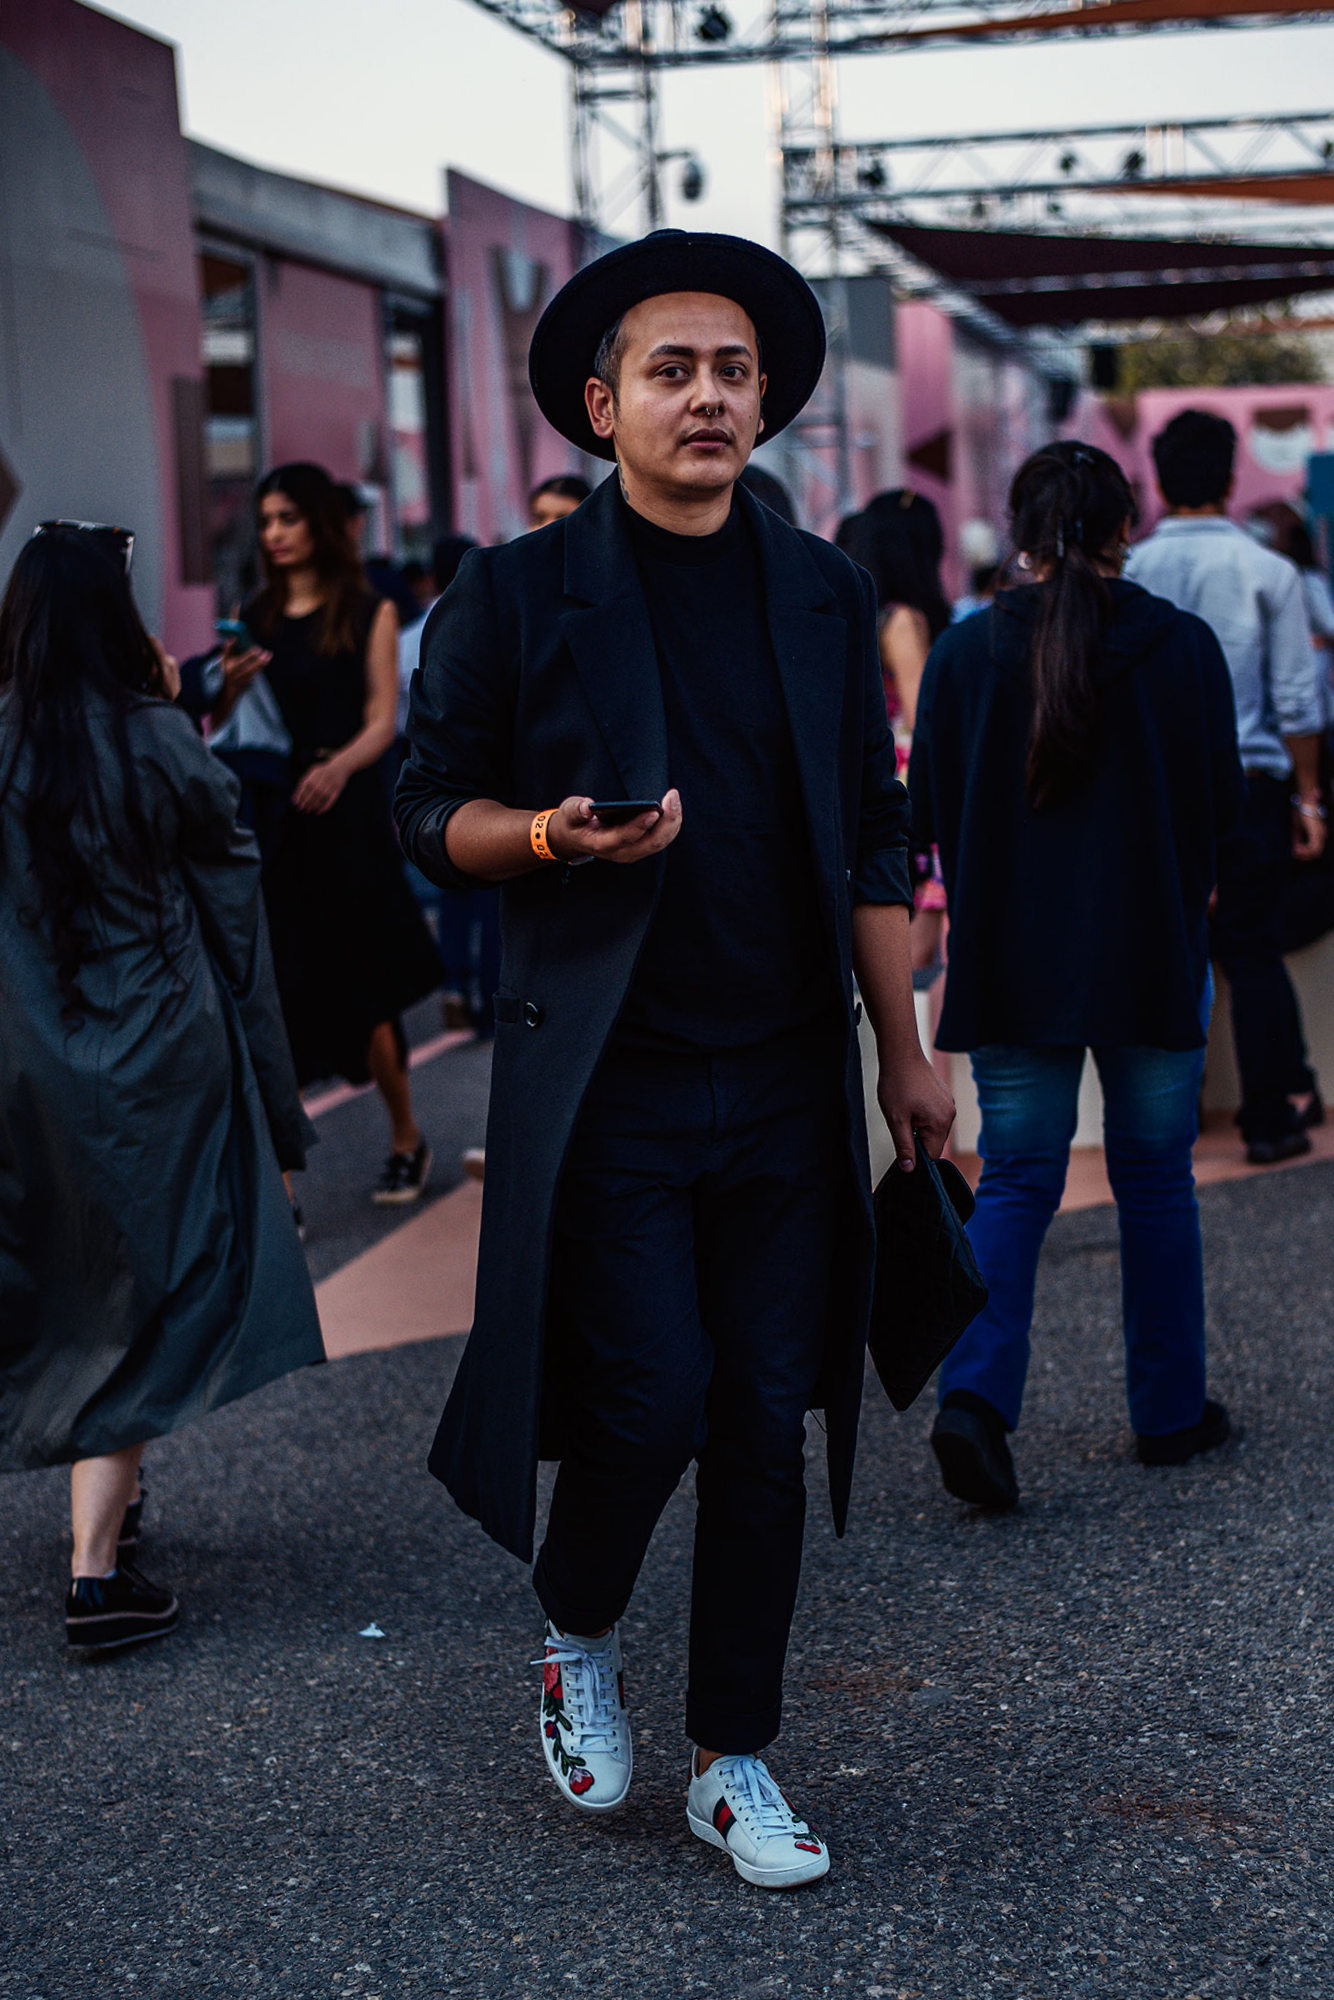 AIFW-AW17-Streetstyle-Rawky-Ksh-10